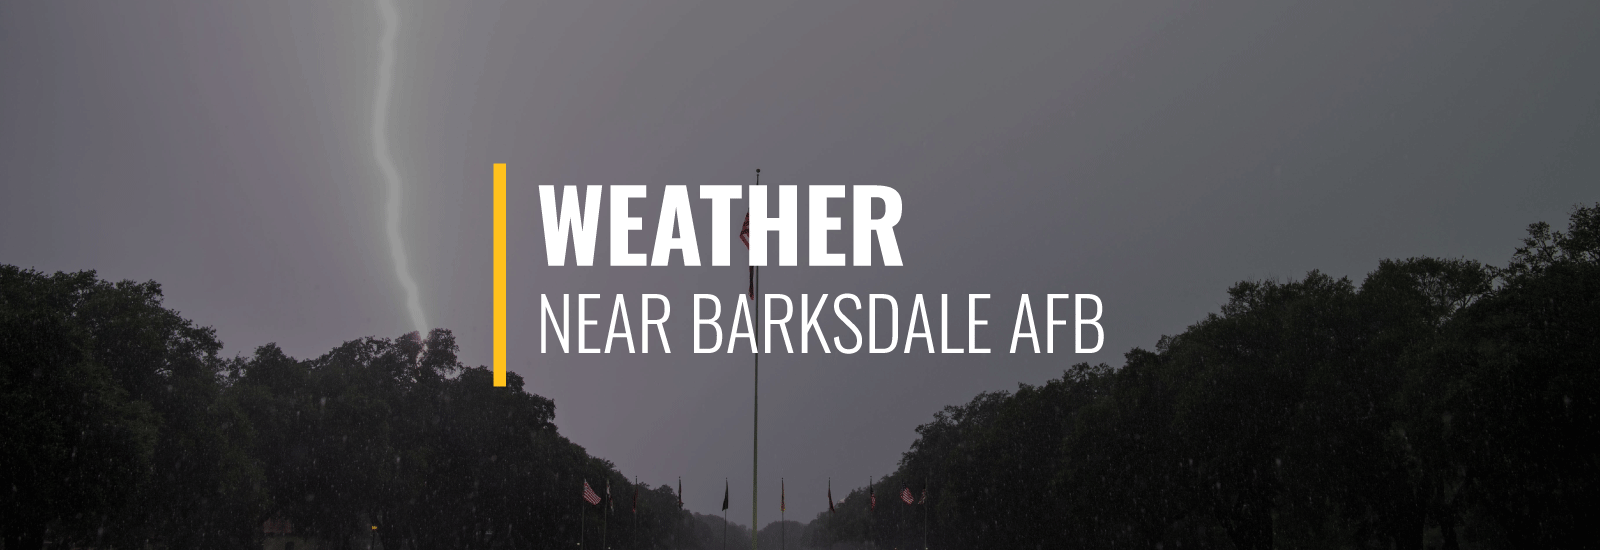 Barksdale AFB Weather